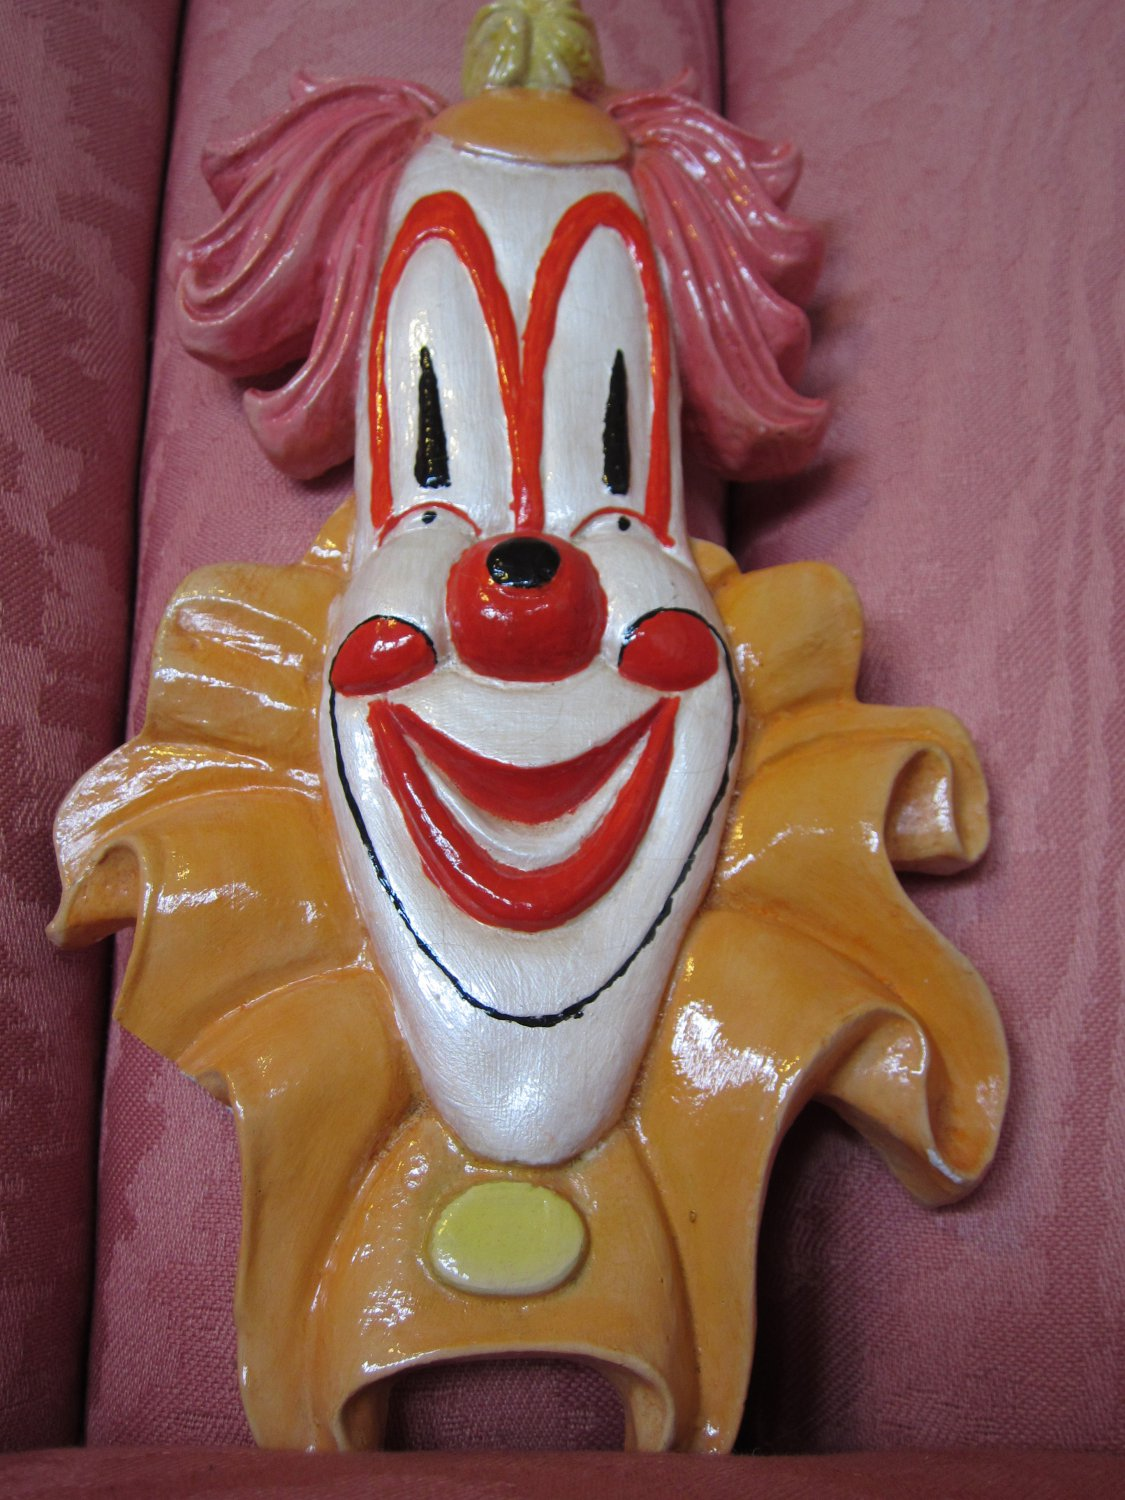 Vintage 60s 70s Creepy Cool Circus Clown Face Wall Plaque